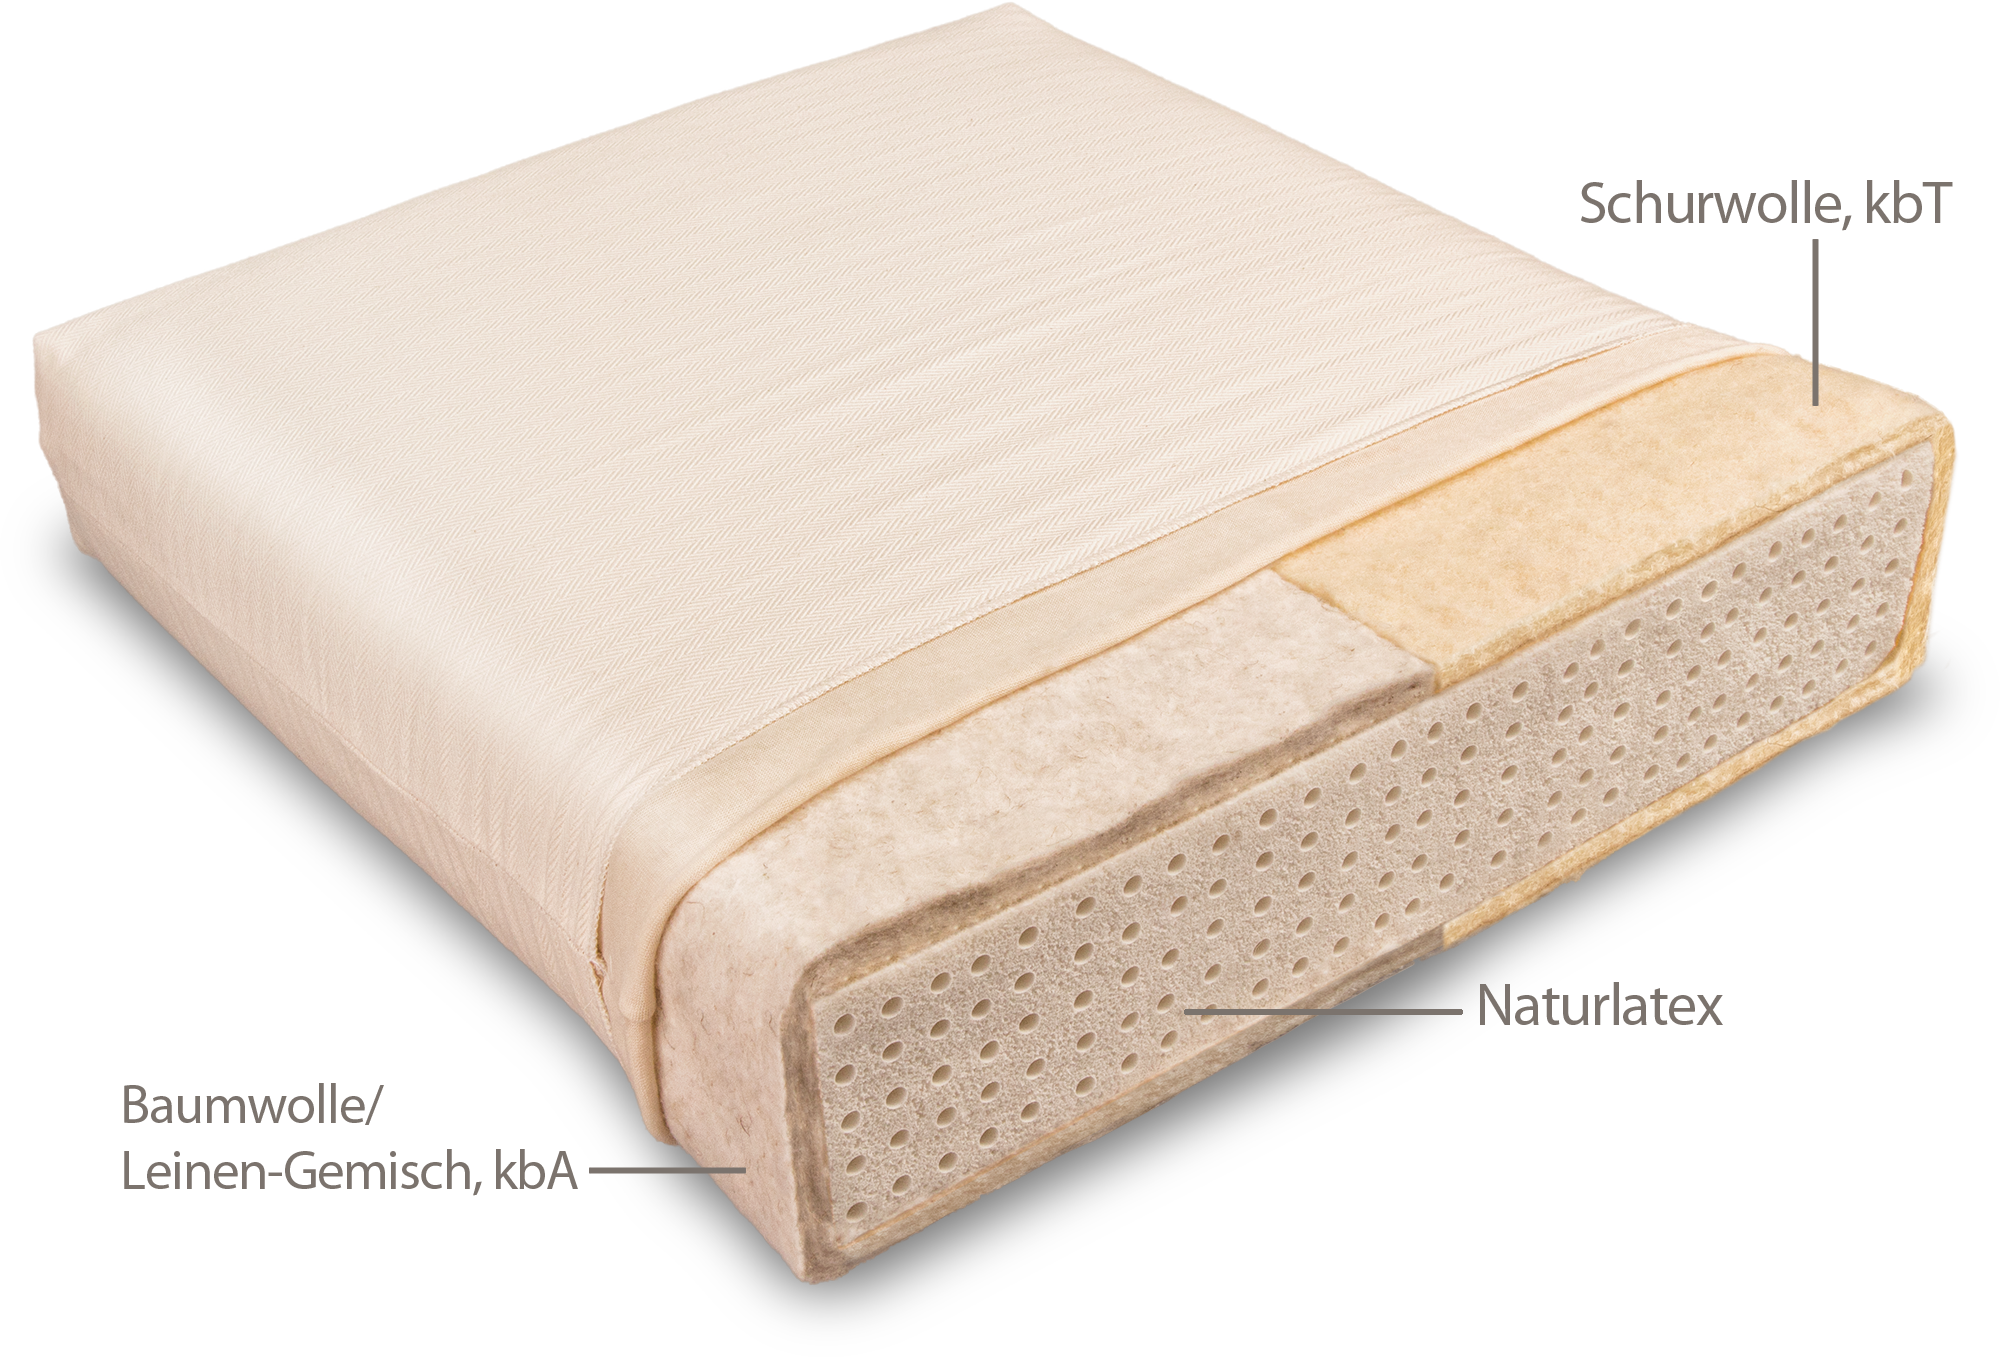 Mattress For Children With Natural Latex And Cotton linen